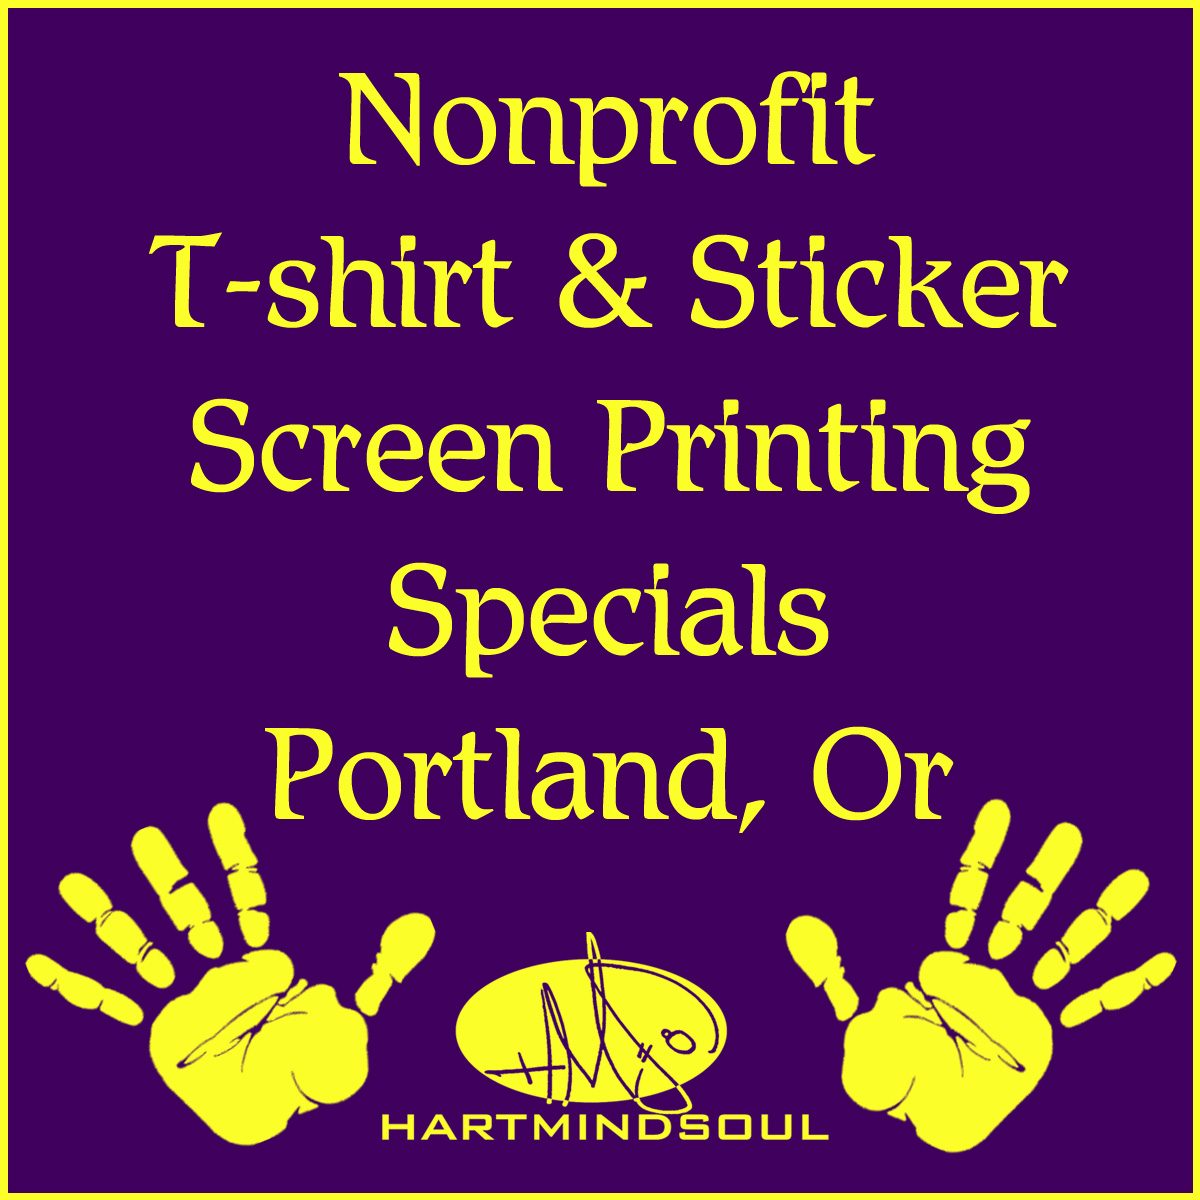 Nonprofit t shirt sticker specials portland - WORKING